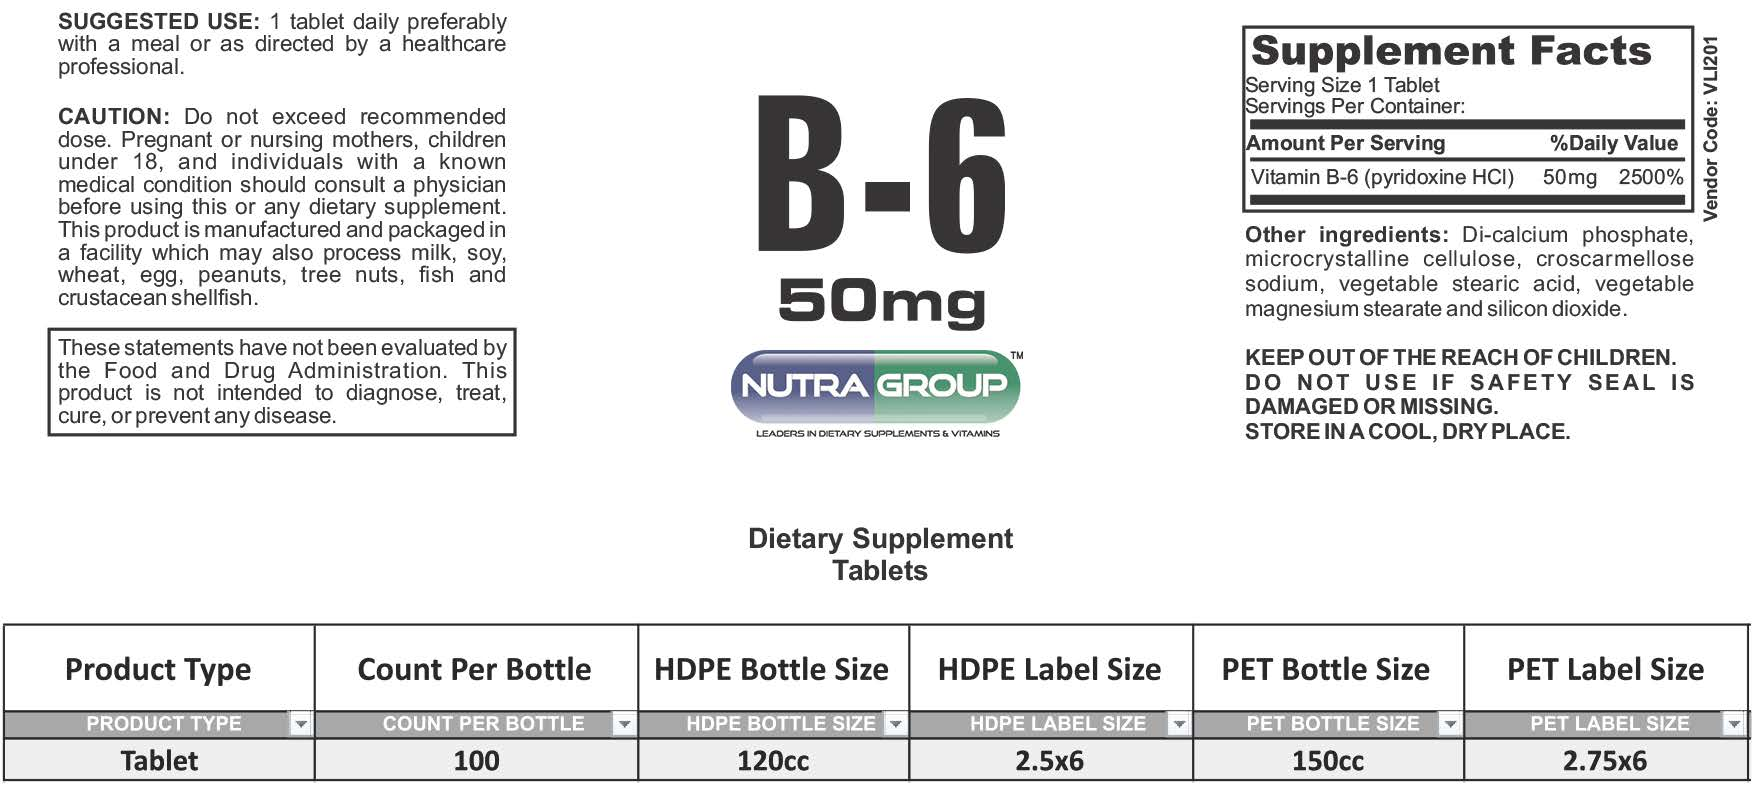 Private label vitamin B6 supplement